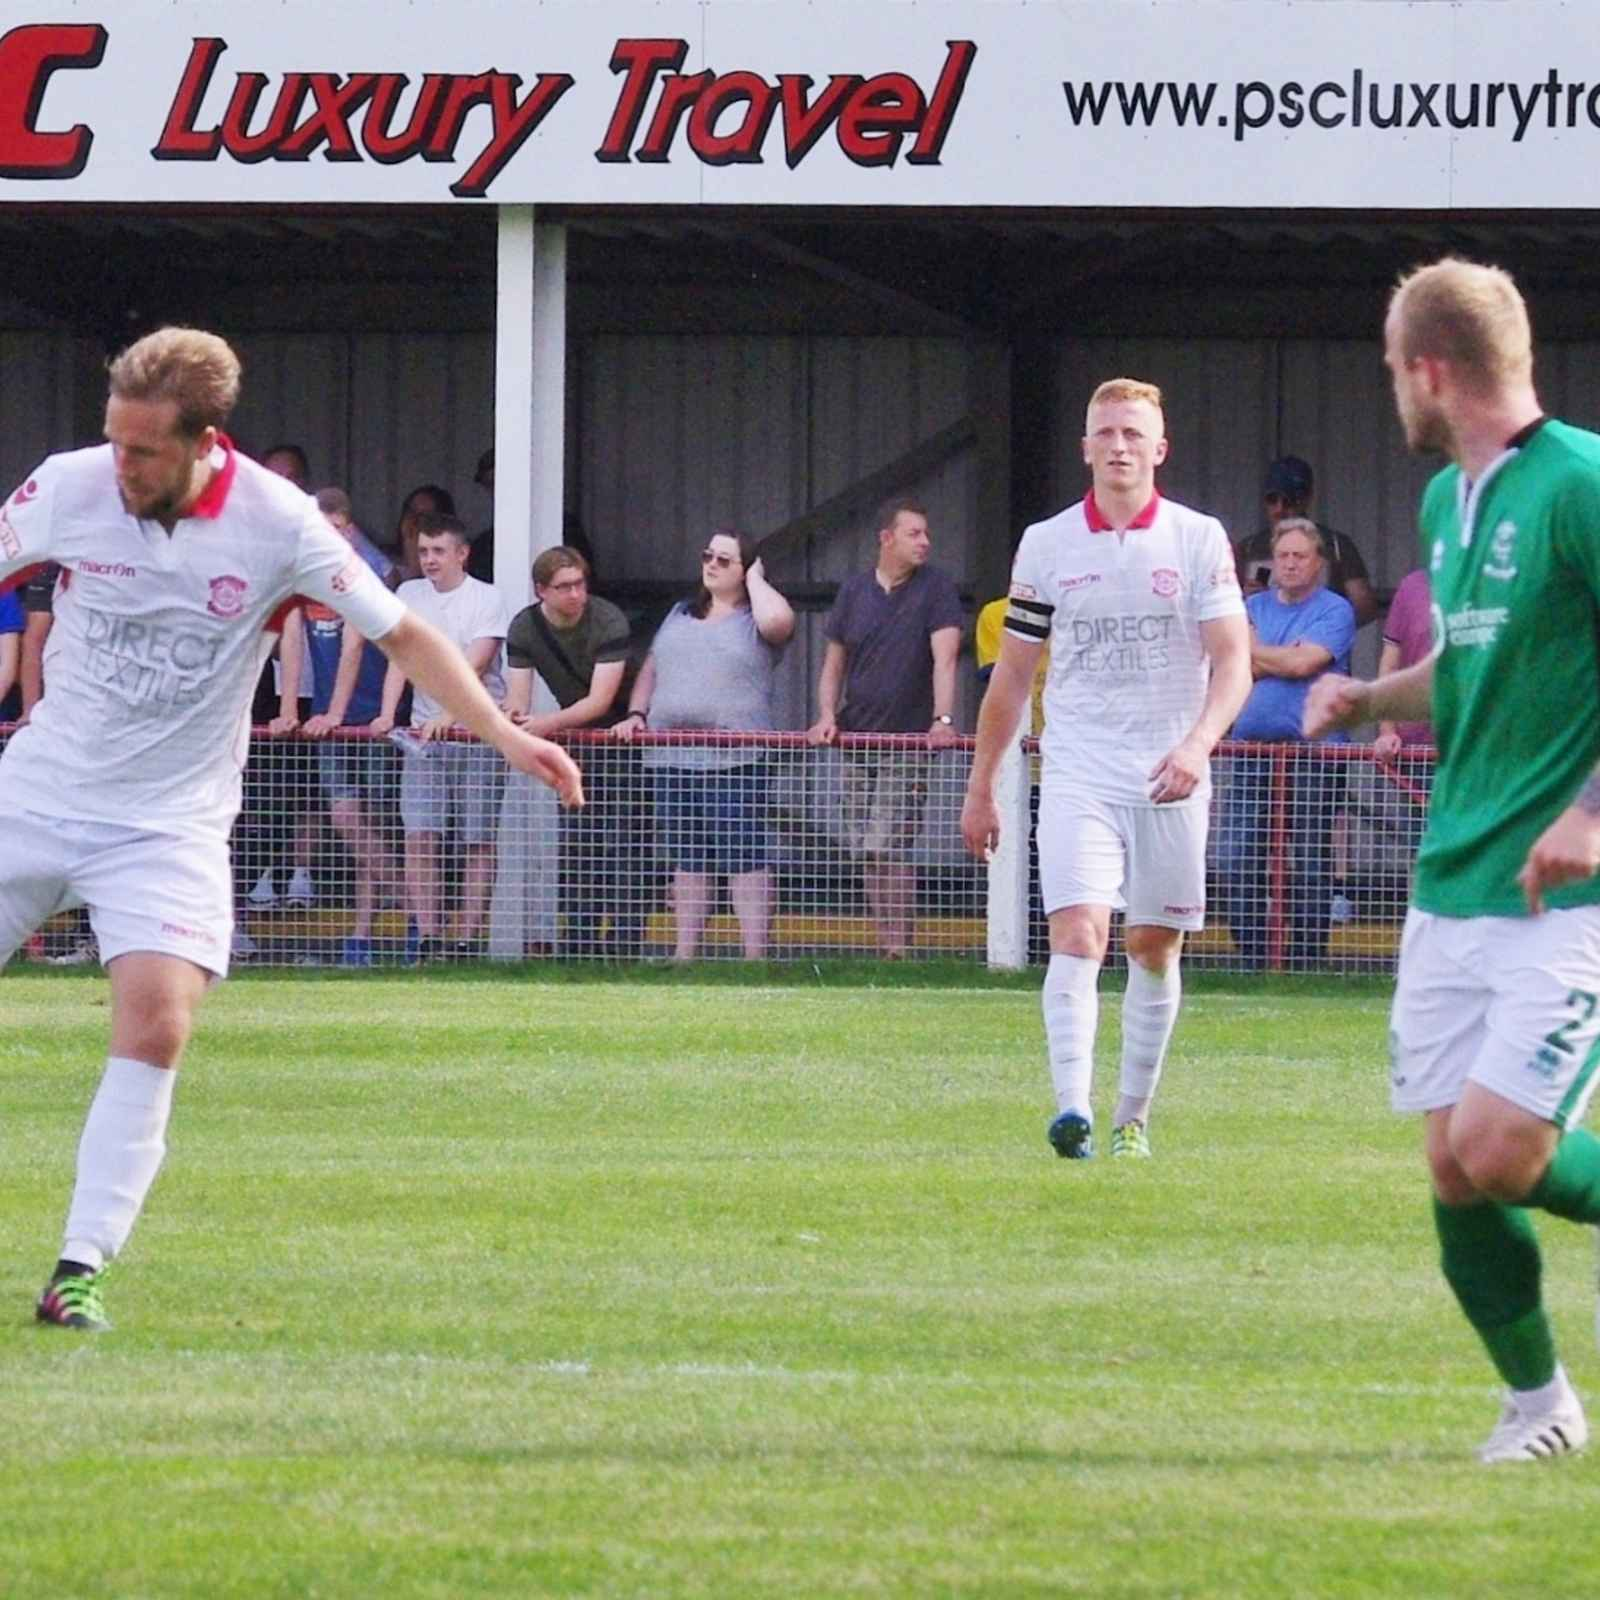 INJURIES FORCE A CANCELLED TRIP TO WHITLEY BAY